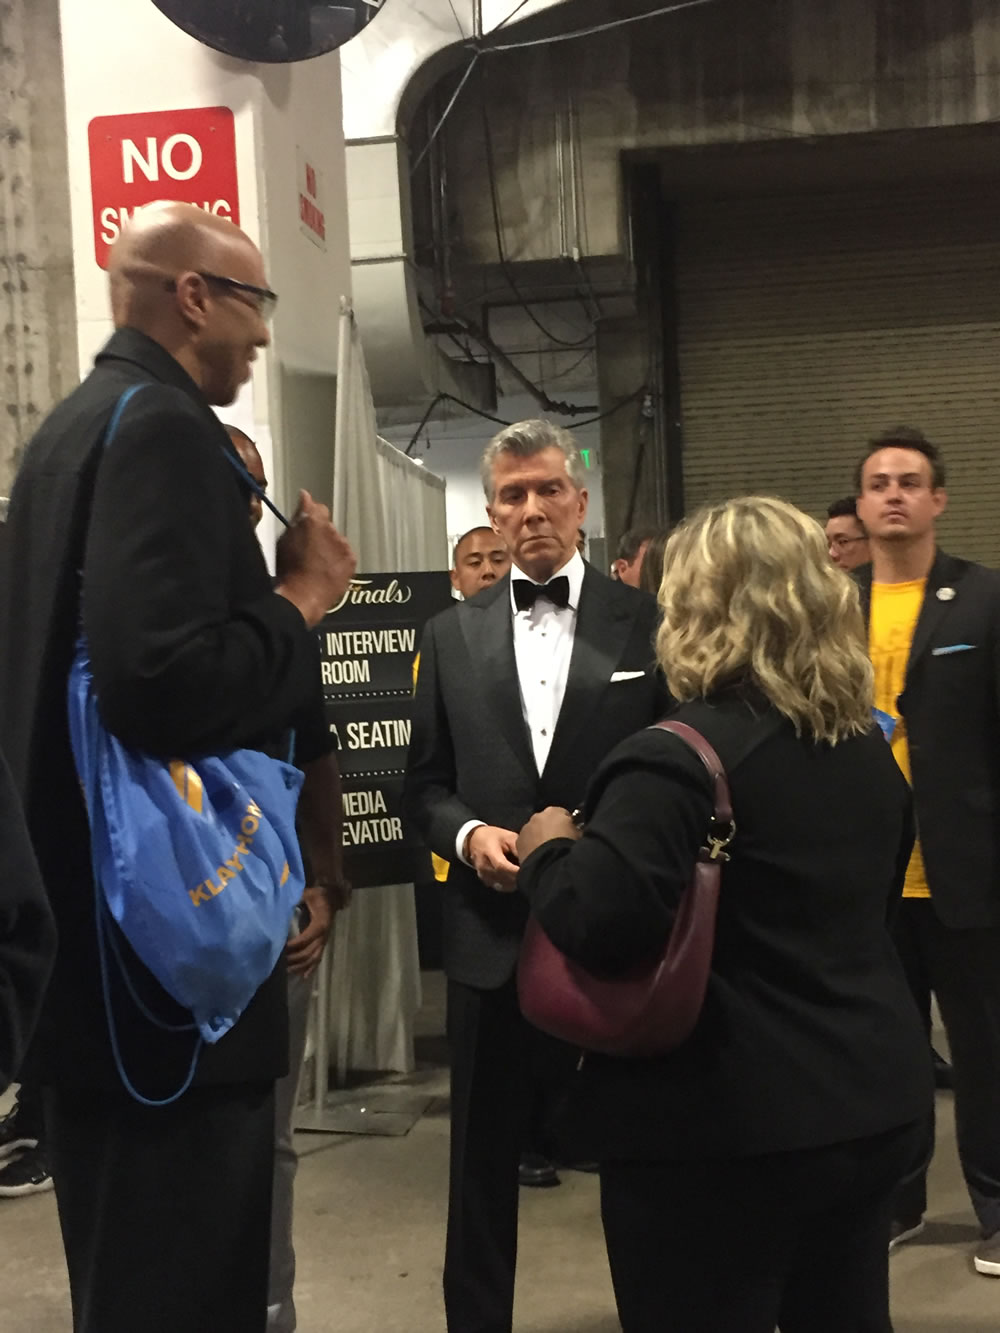 <div class='meta'><div class='origin-logo' data-origin='none'></div><span class='caption-text' data-credit='KGO-TV'>Klay Thompson's dad Mychal and legendary ringside announcer Michael Buffer are seen off court at the NBA Finals before game 1 on Thursday, June 4, 2017 in Oakland, Calif.</span></div>